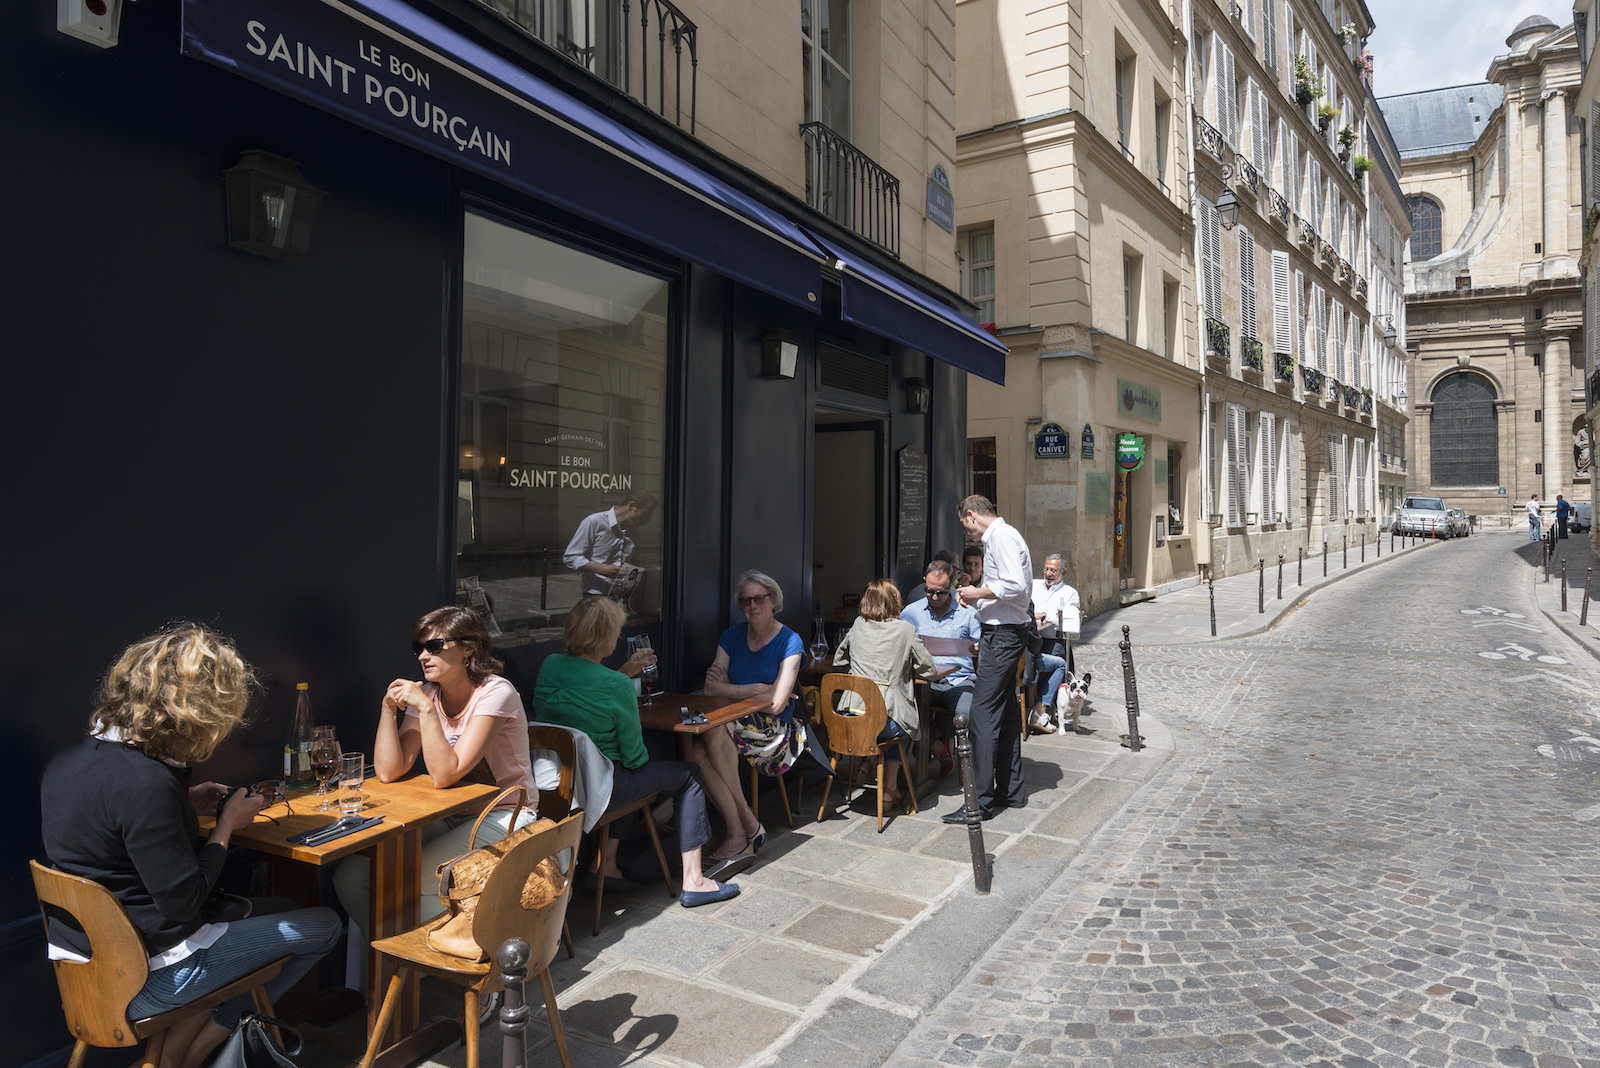 HiP Paris blog. Discovering Saint Sulpice. Le Bon Saint Pourçain bistrot on rue Servandoni.